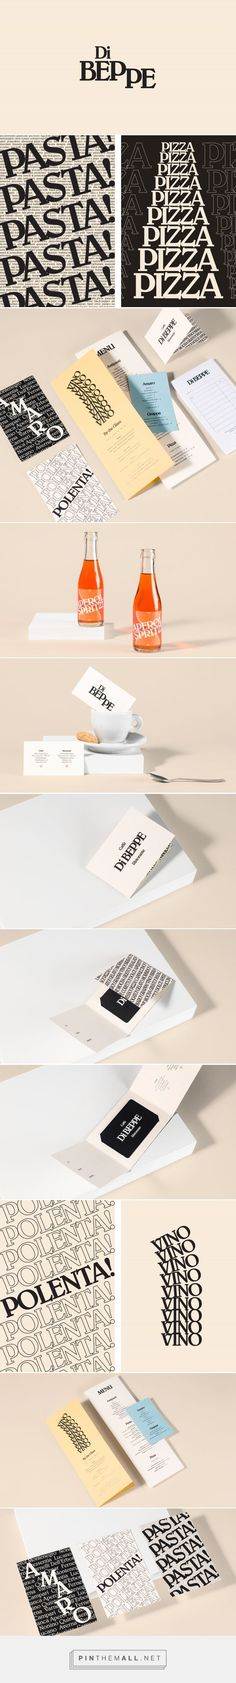 New Graphic Identity for Di Beppe by Glasfurd & Walker — BP&O... - a grouped images picture - Pin Them All